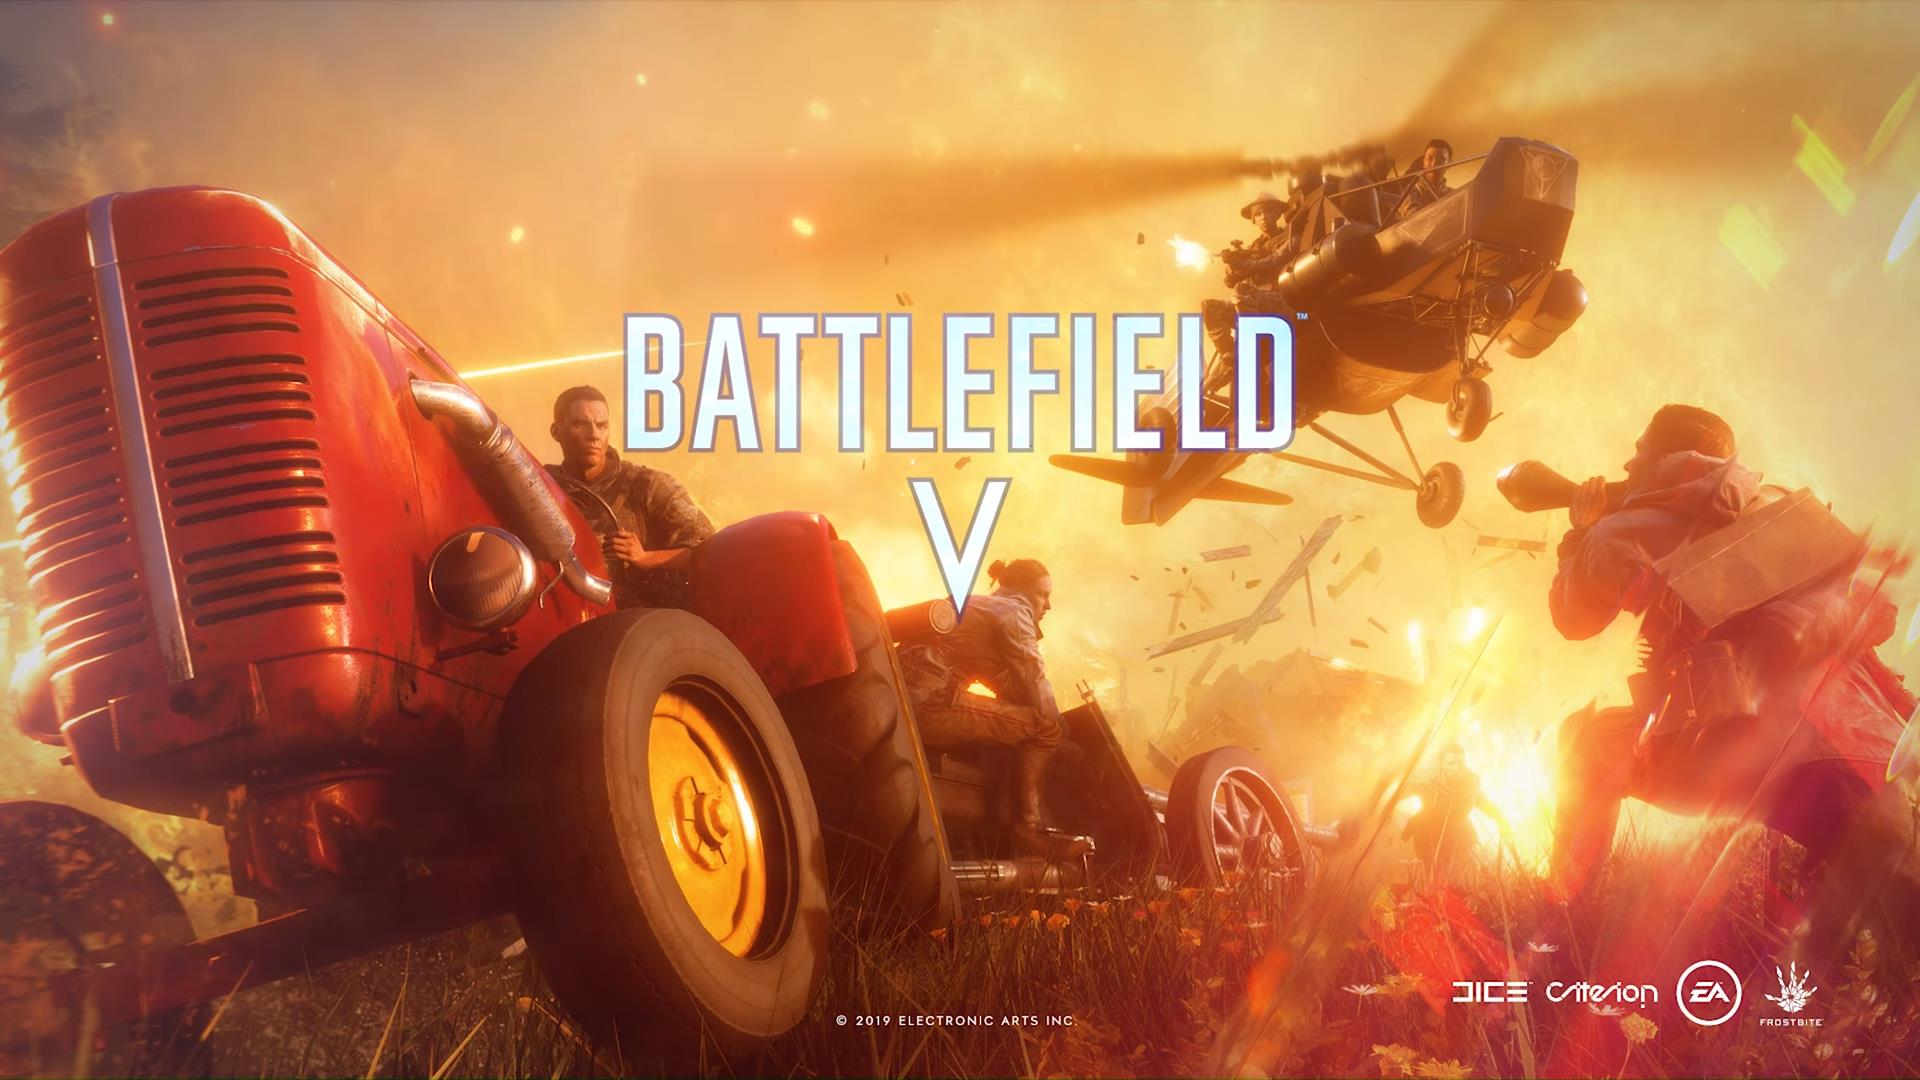 Battlefield 5 Firestorm battle royale mode launches later this month – watch first trailer